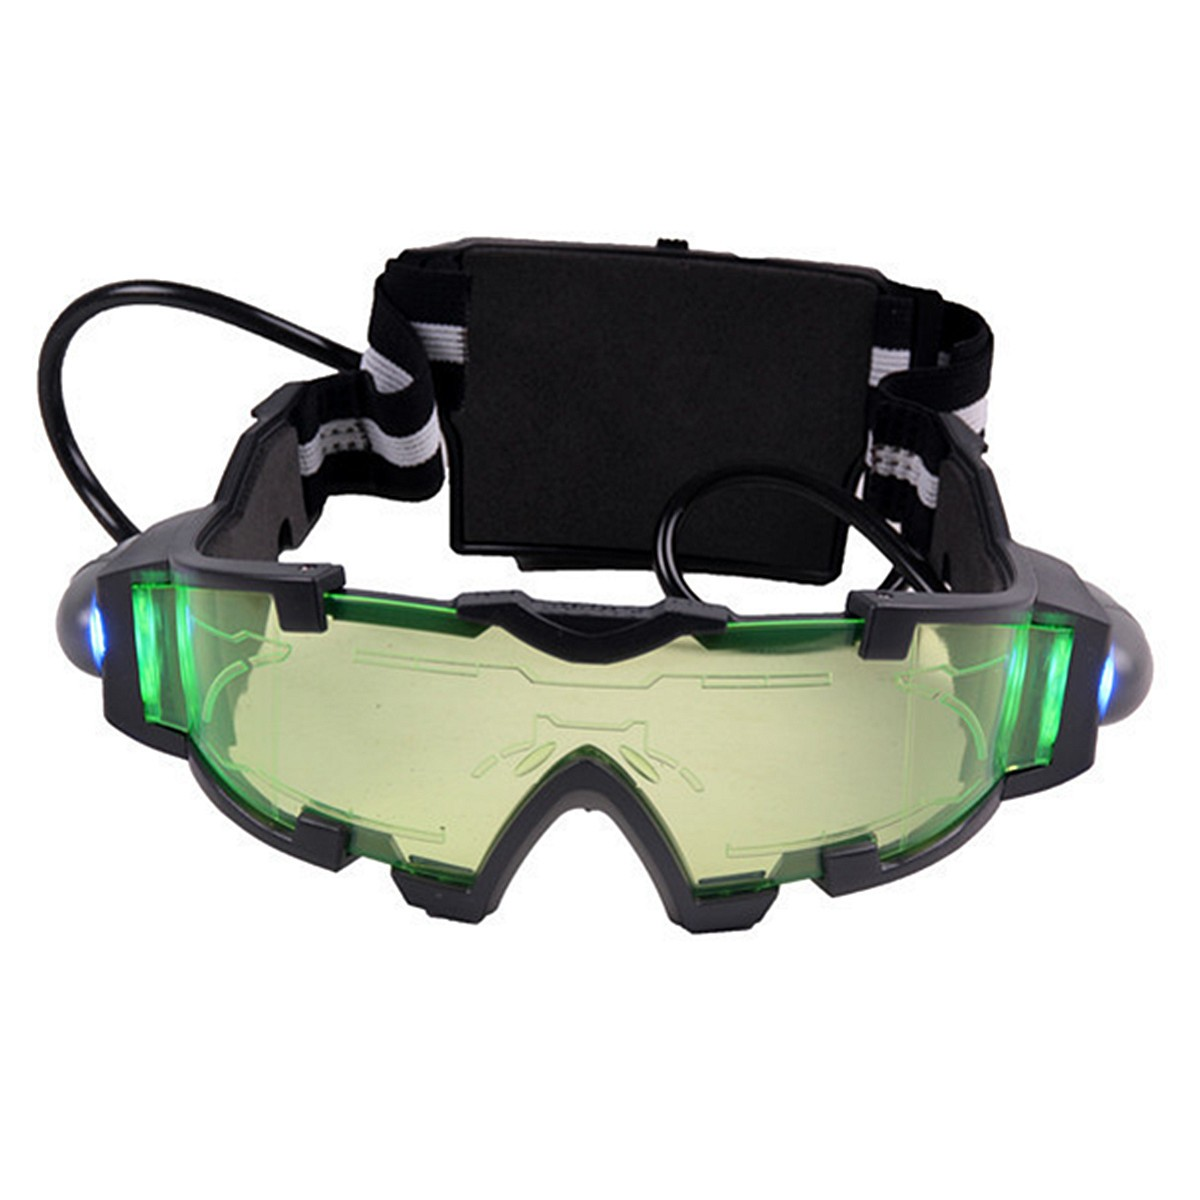 Adjustable Elastic Military Night Vision Goggles Glasses Windproof Security Eyeshield Safety Eye Protection Glasses adjustable windproof elastic band night vision goggles glass children protection glasses green lens eye shield with led